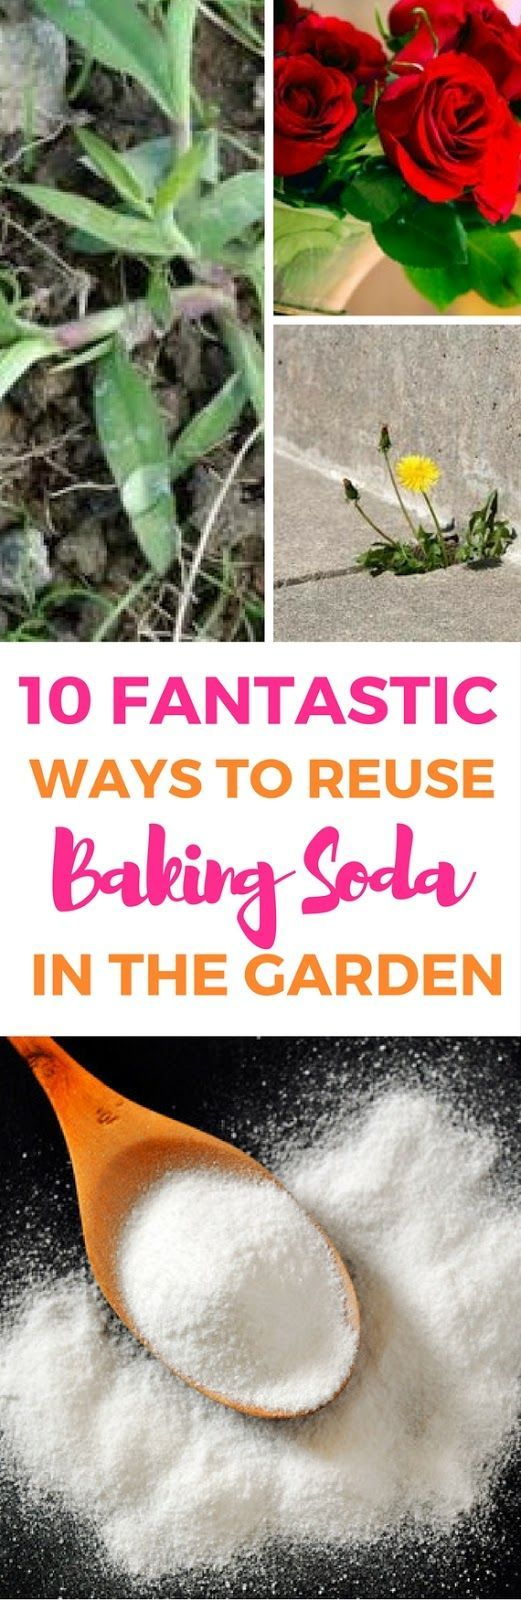 10 Super Nifty Ways To Use Baking Soda In Your Garden - Reuse baking soda in your garden and see what happens with the following things. Luckily I found these hacks!!